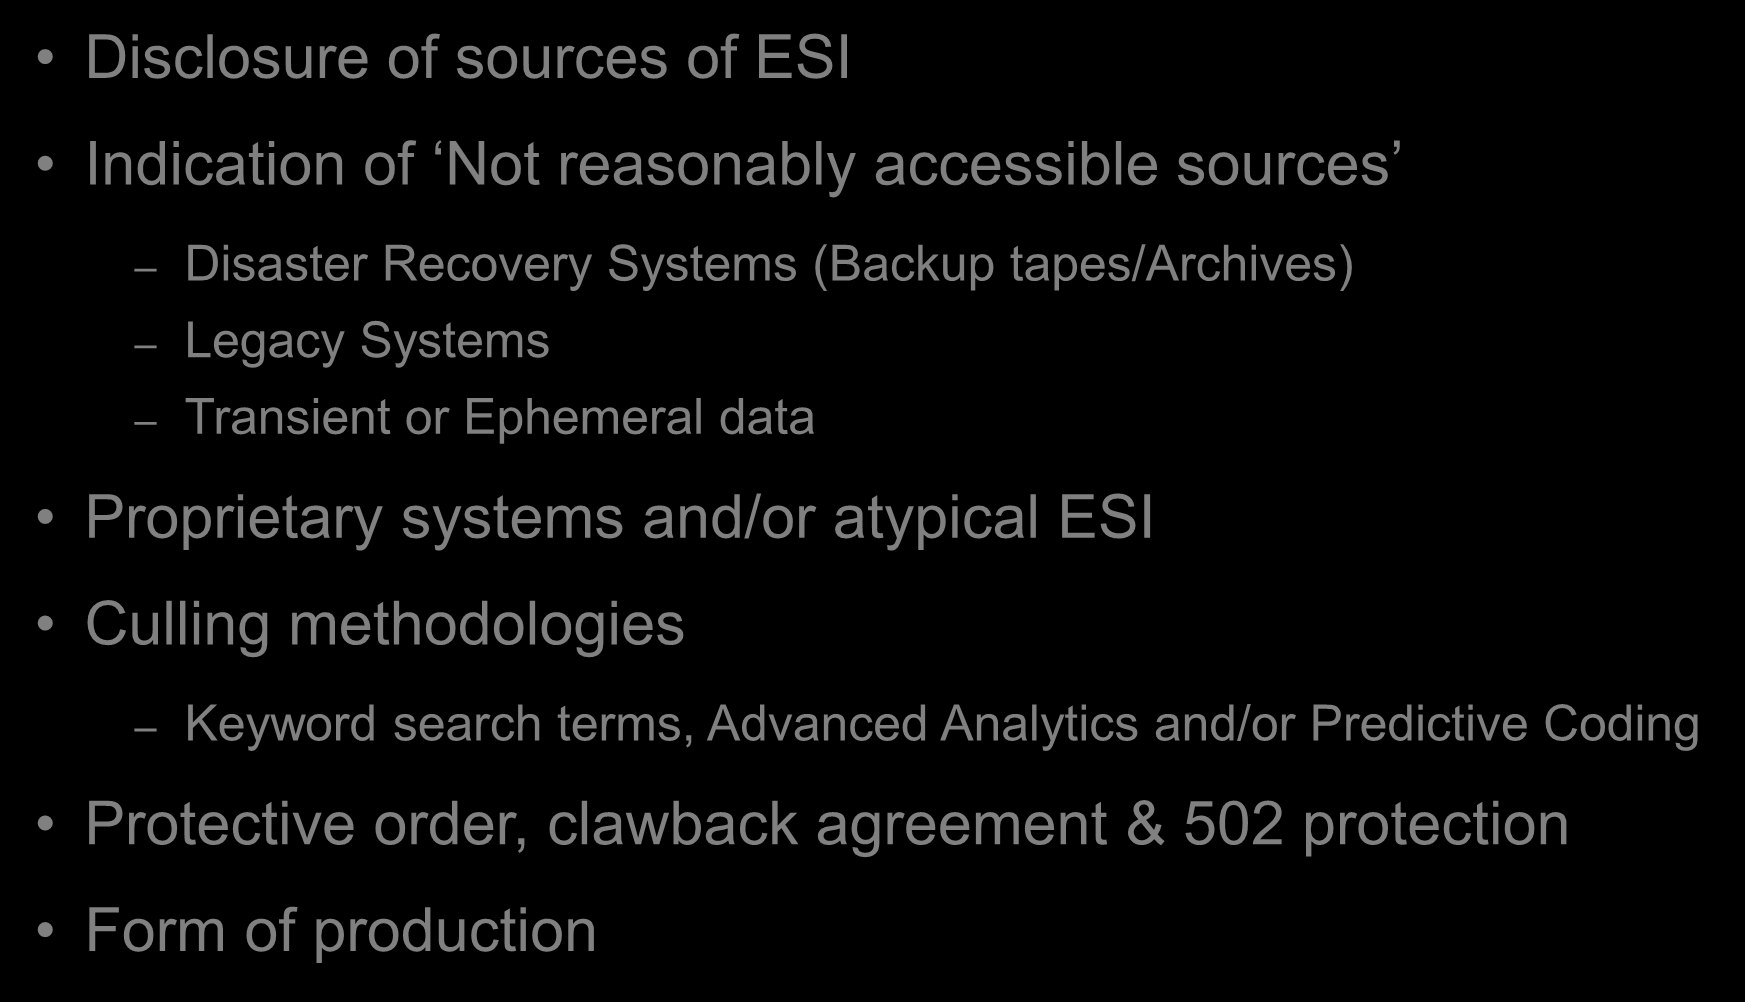 Meet and Confer Disclosure of sources of ESI Indication of Not reasonably accessible sources Disaster Recovery Systems (Backup tapes/archives) Legacy Systems Transient or Ephemeral data Proprietary